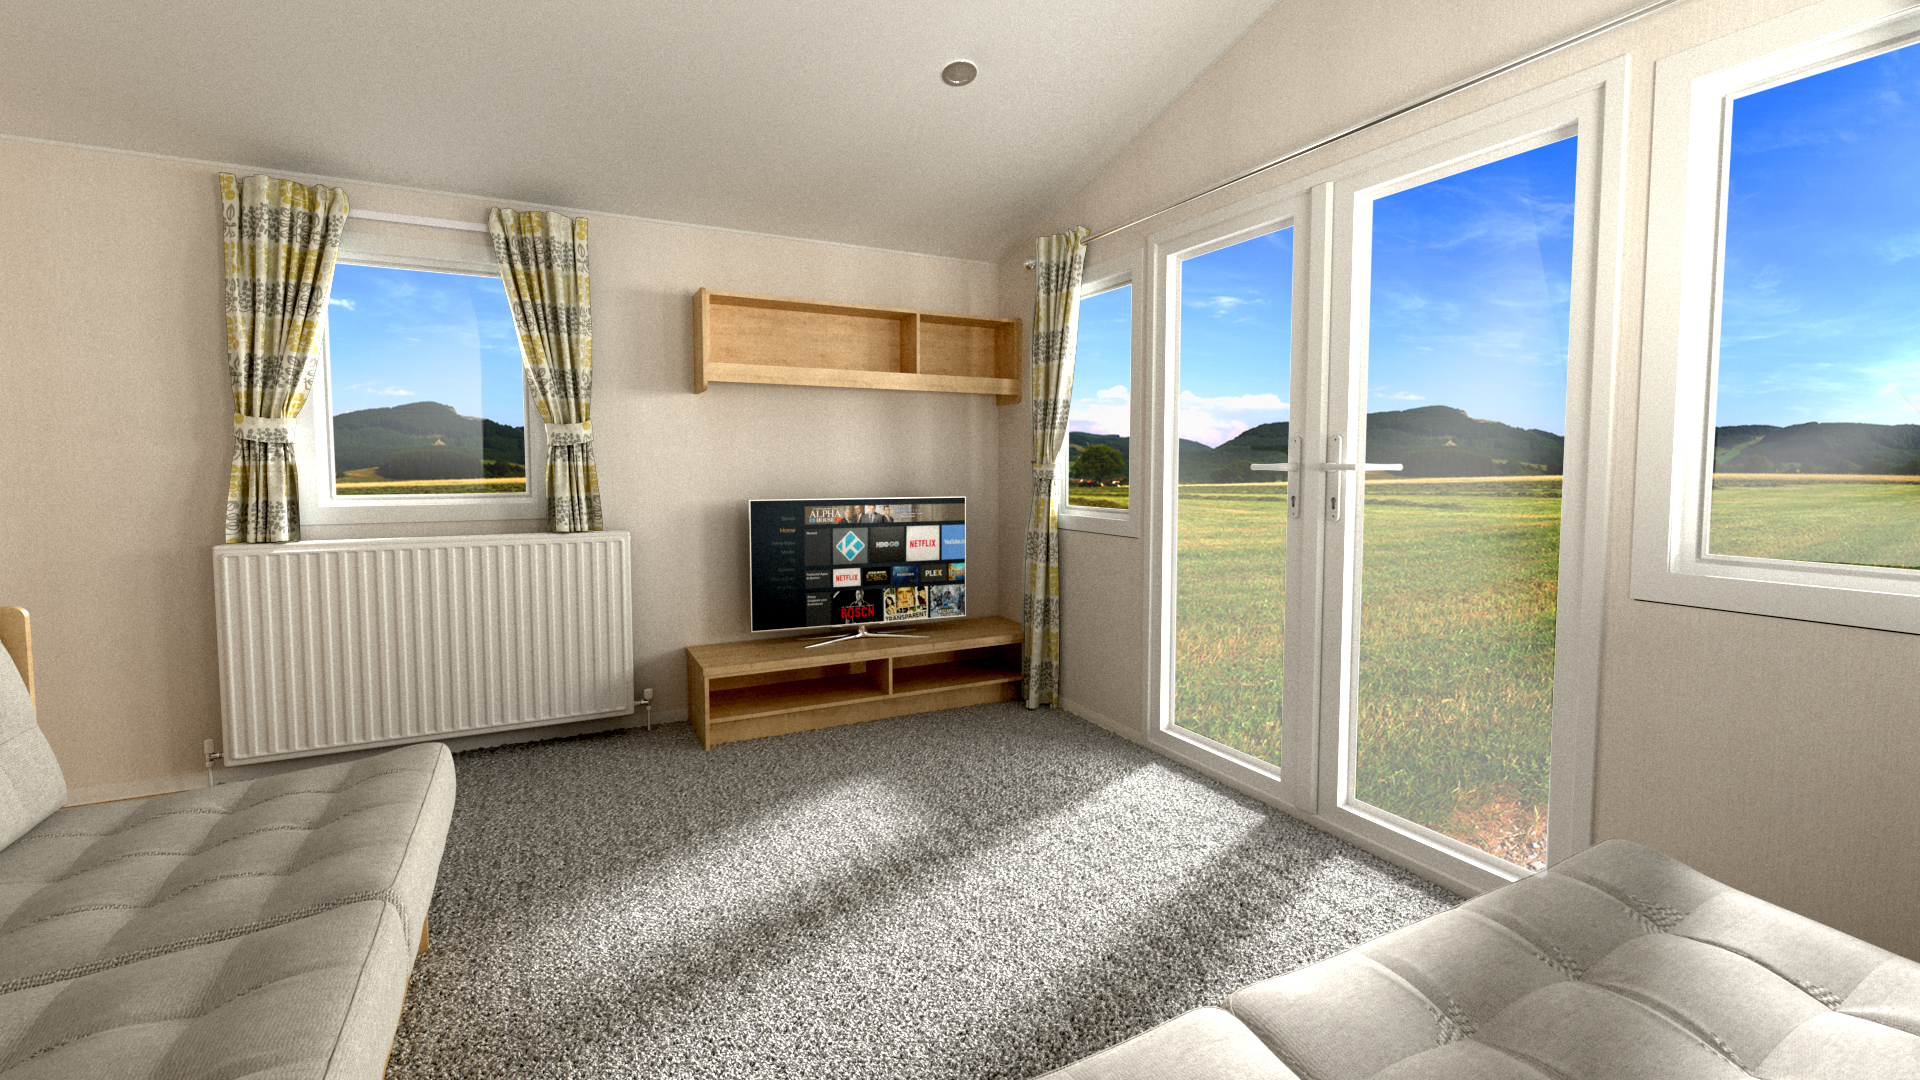 Willerby Grasmere - 3 Bedrooms: New Static Caravans and Holiday Homes for Sale, Clifton, Morpeth Large Image 2